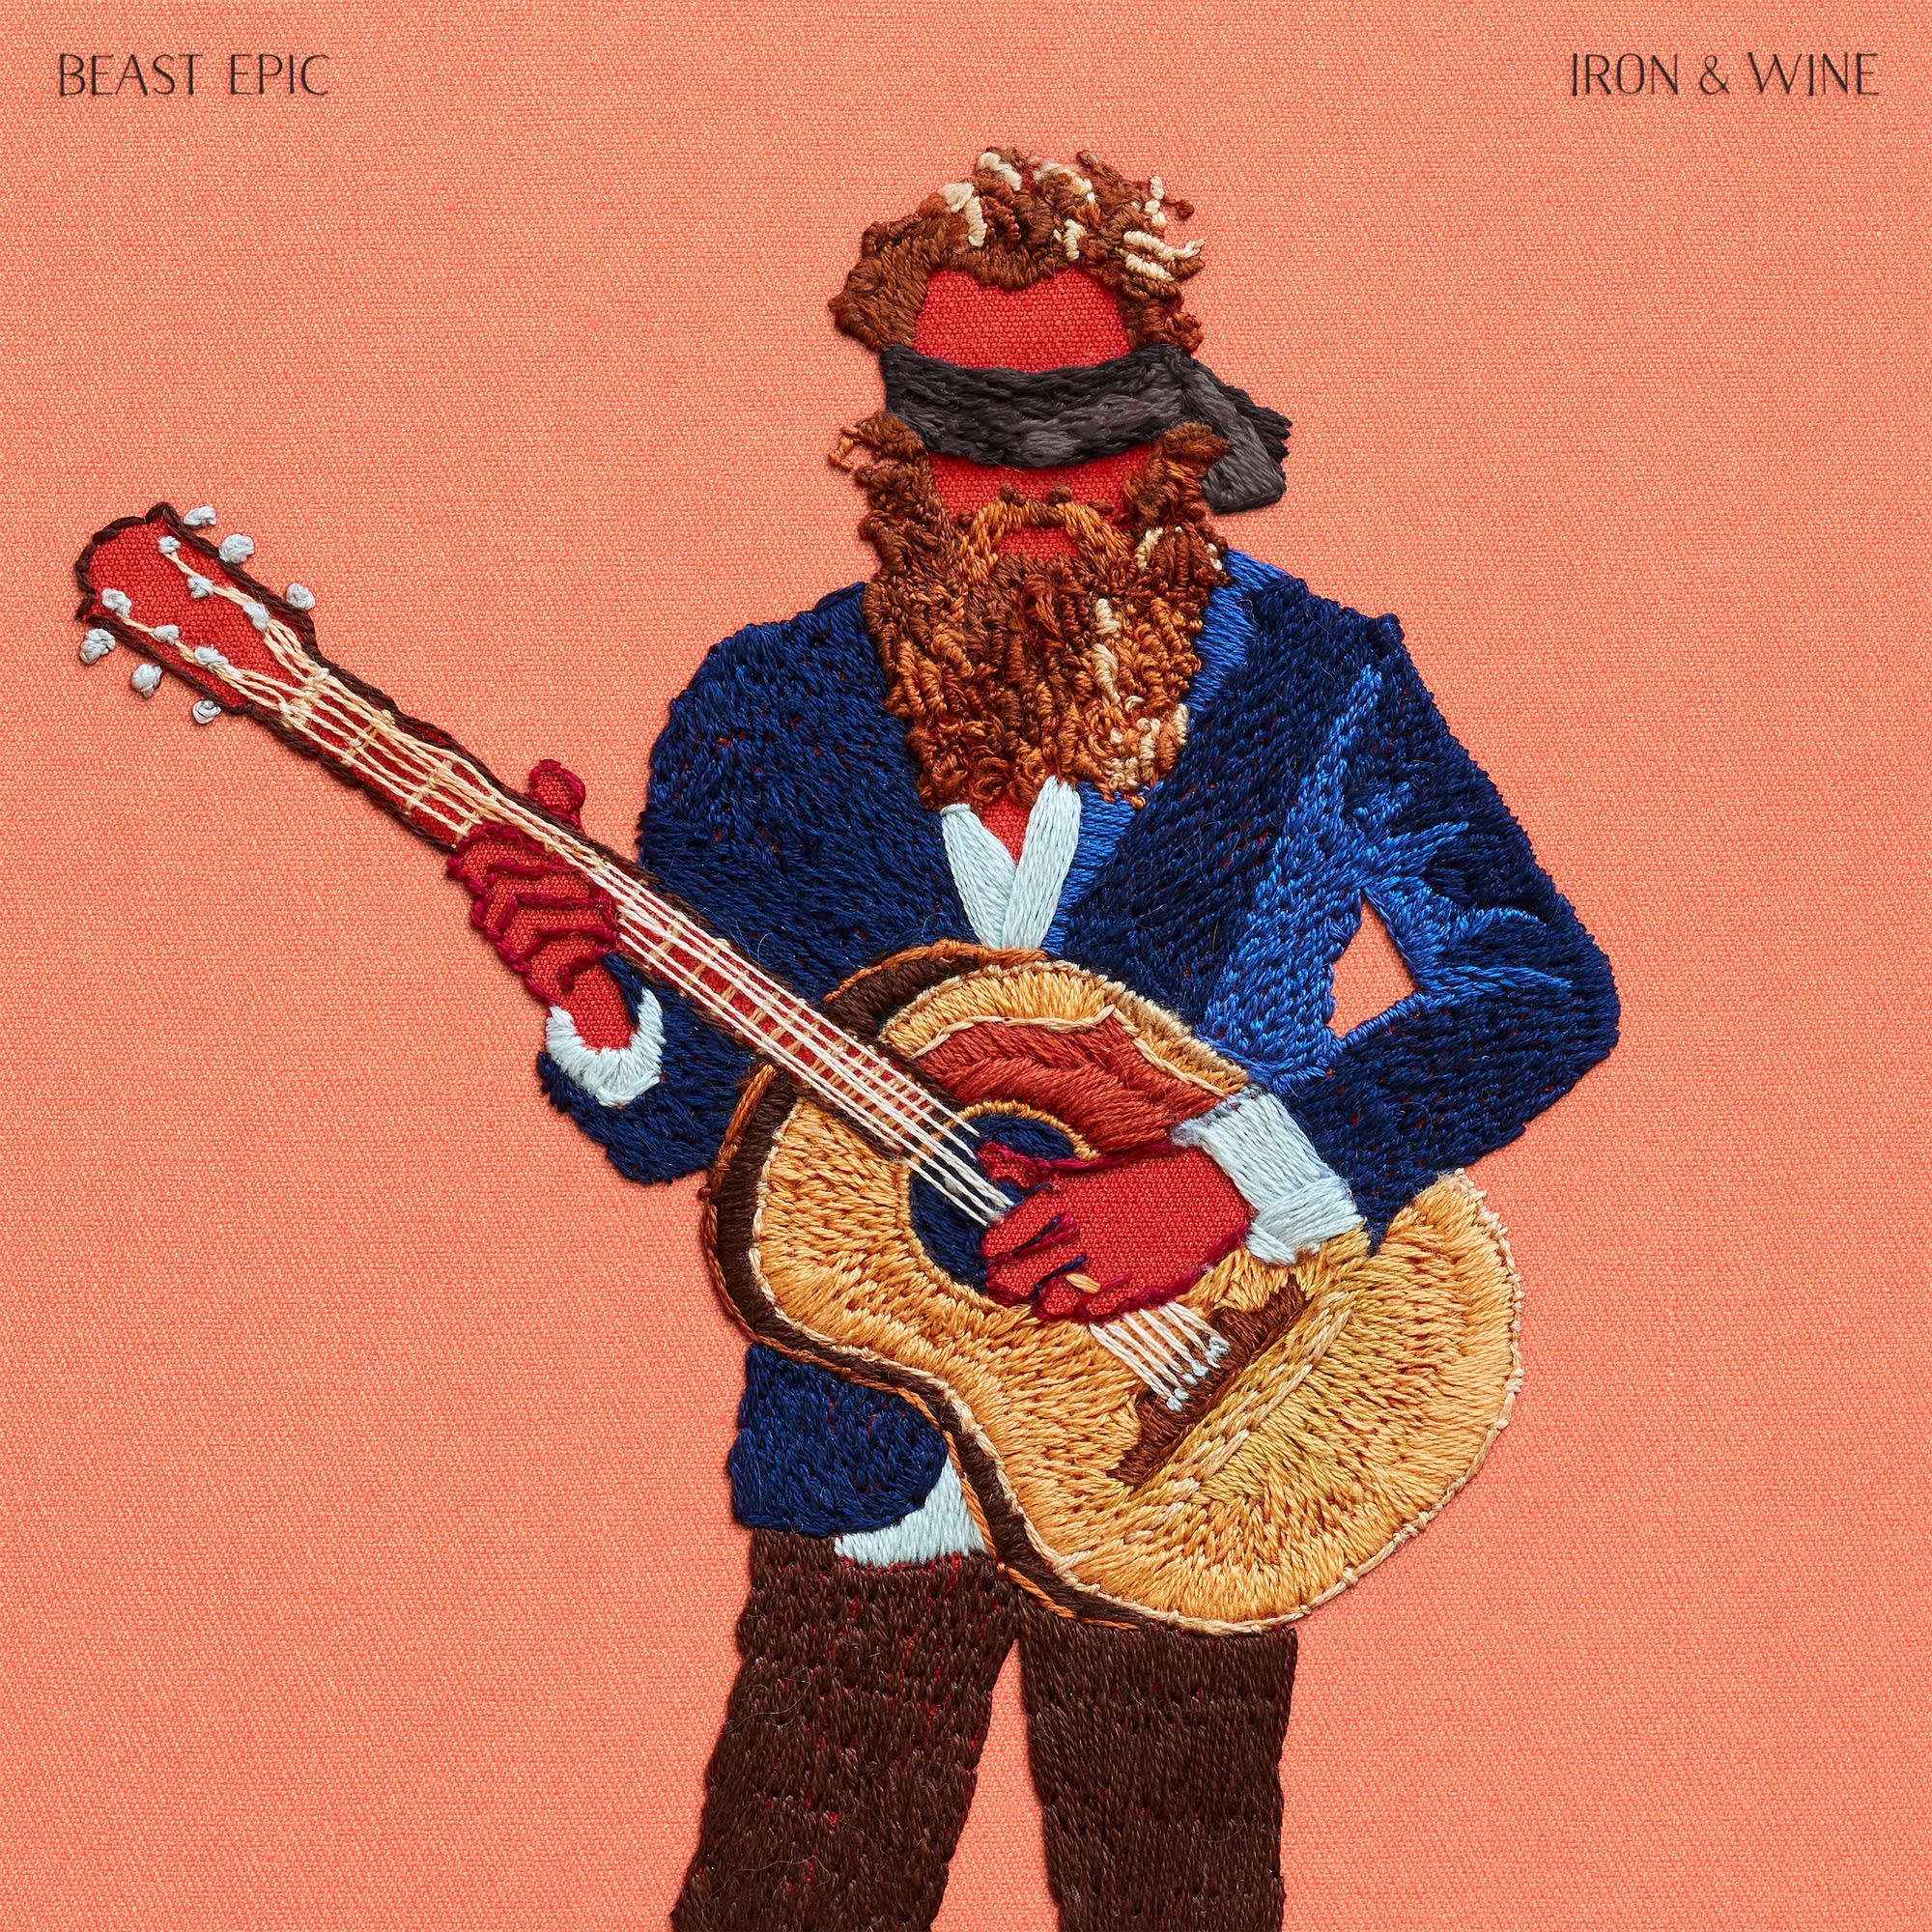 Iron & Wine In-Store Appearance & Signing!